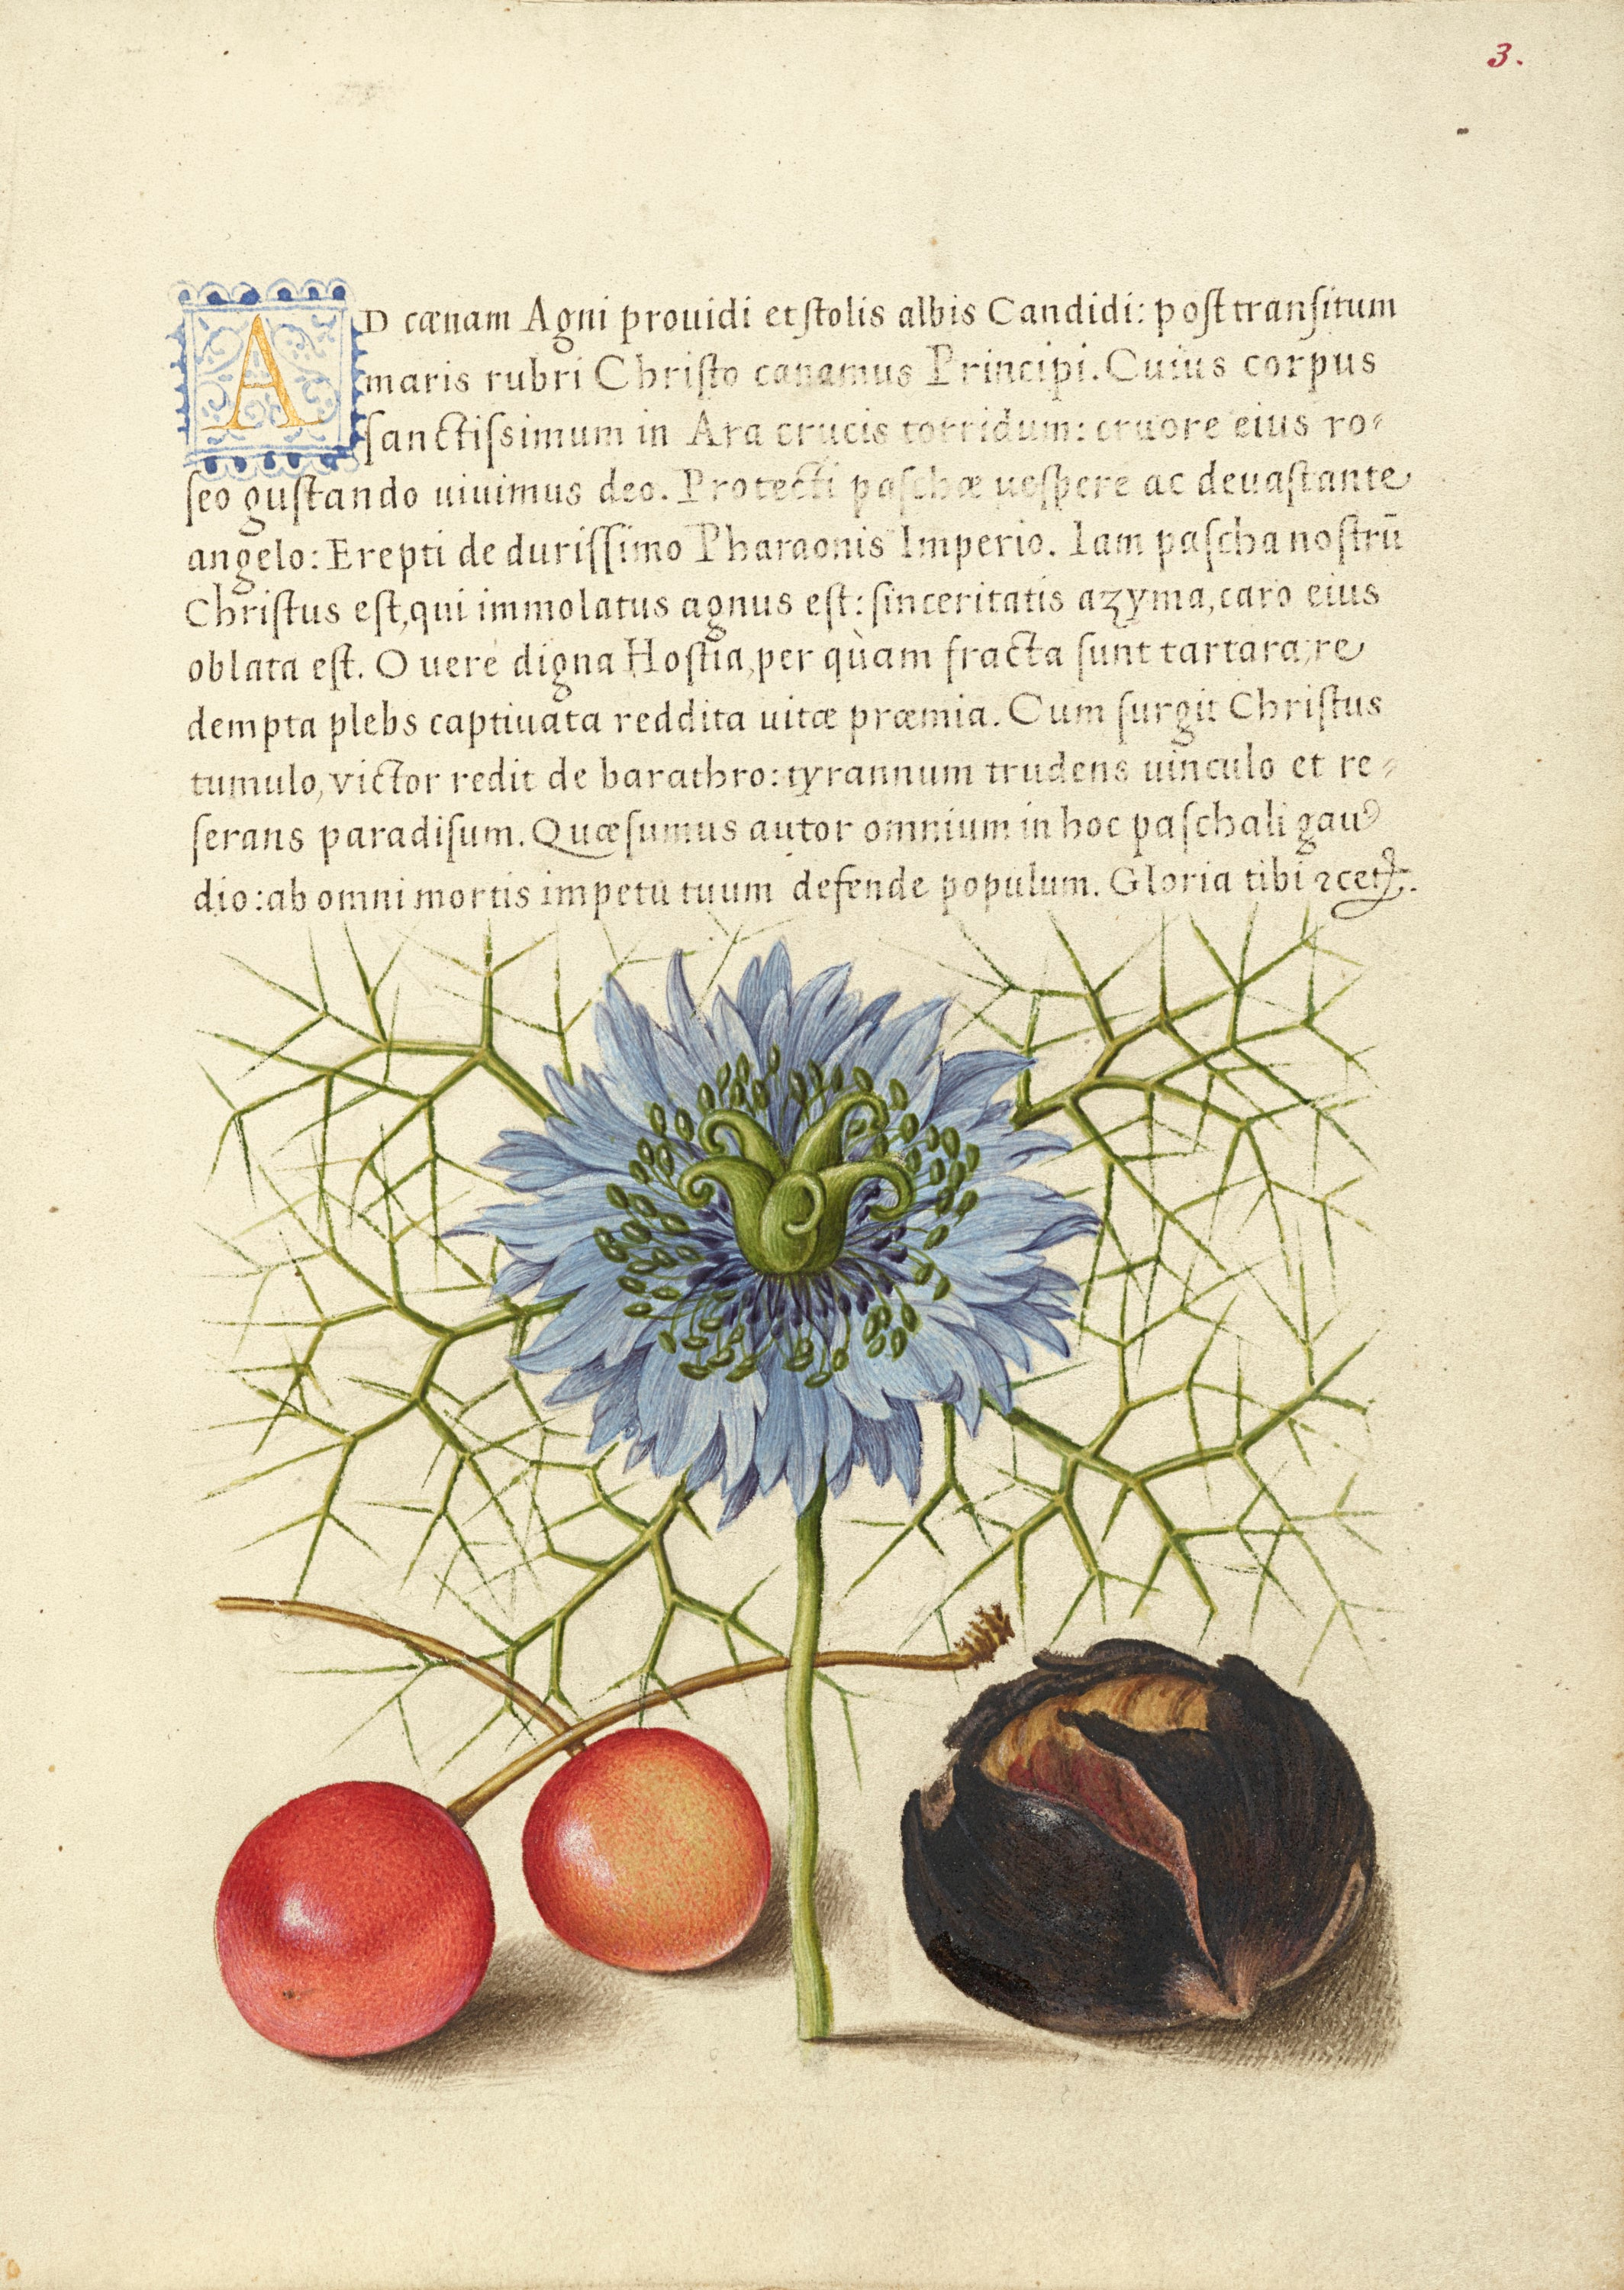 A page from a manuscript showing calligraphy and botanical illustration